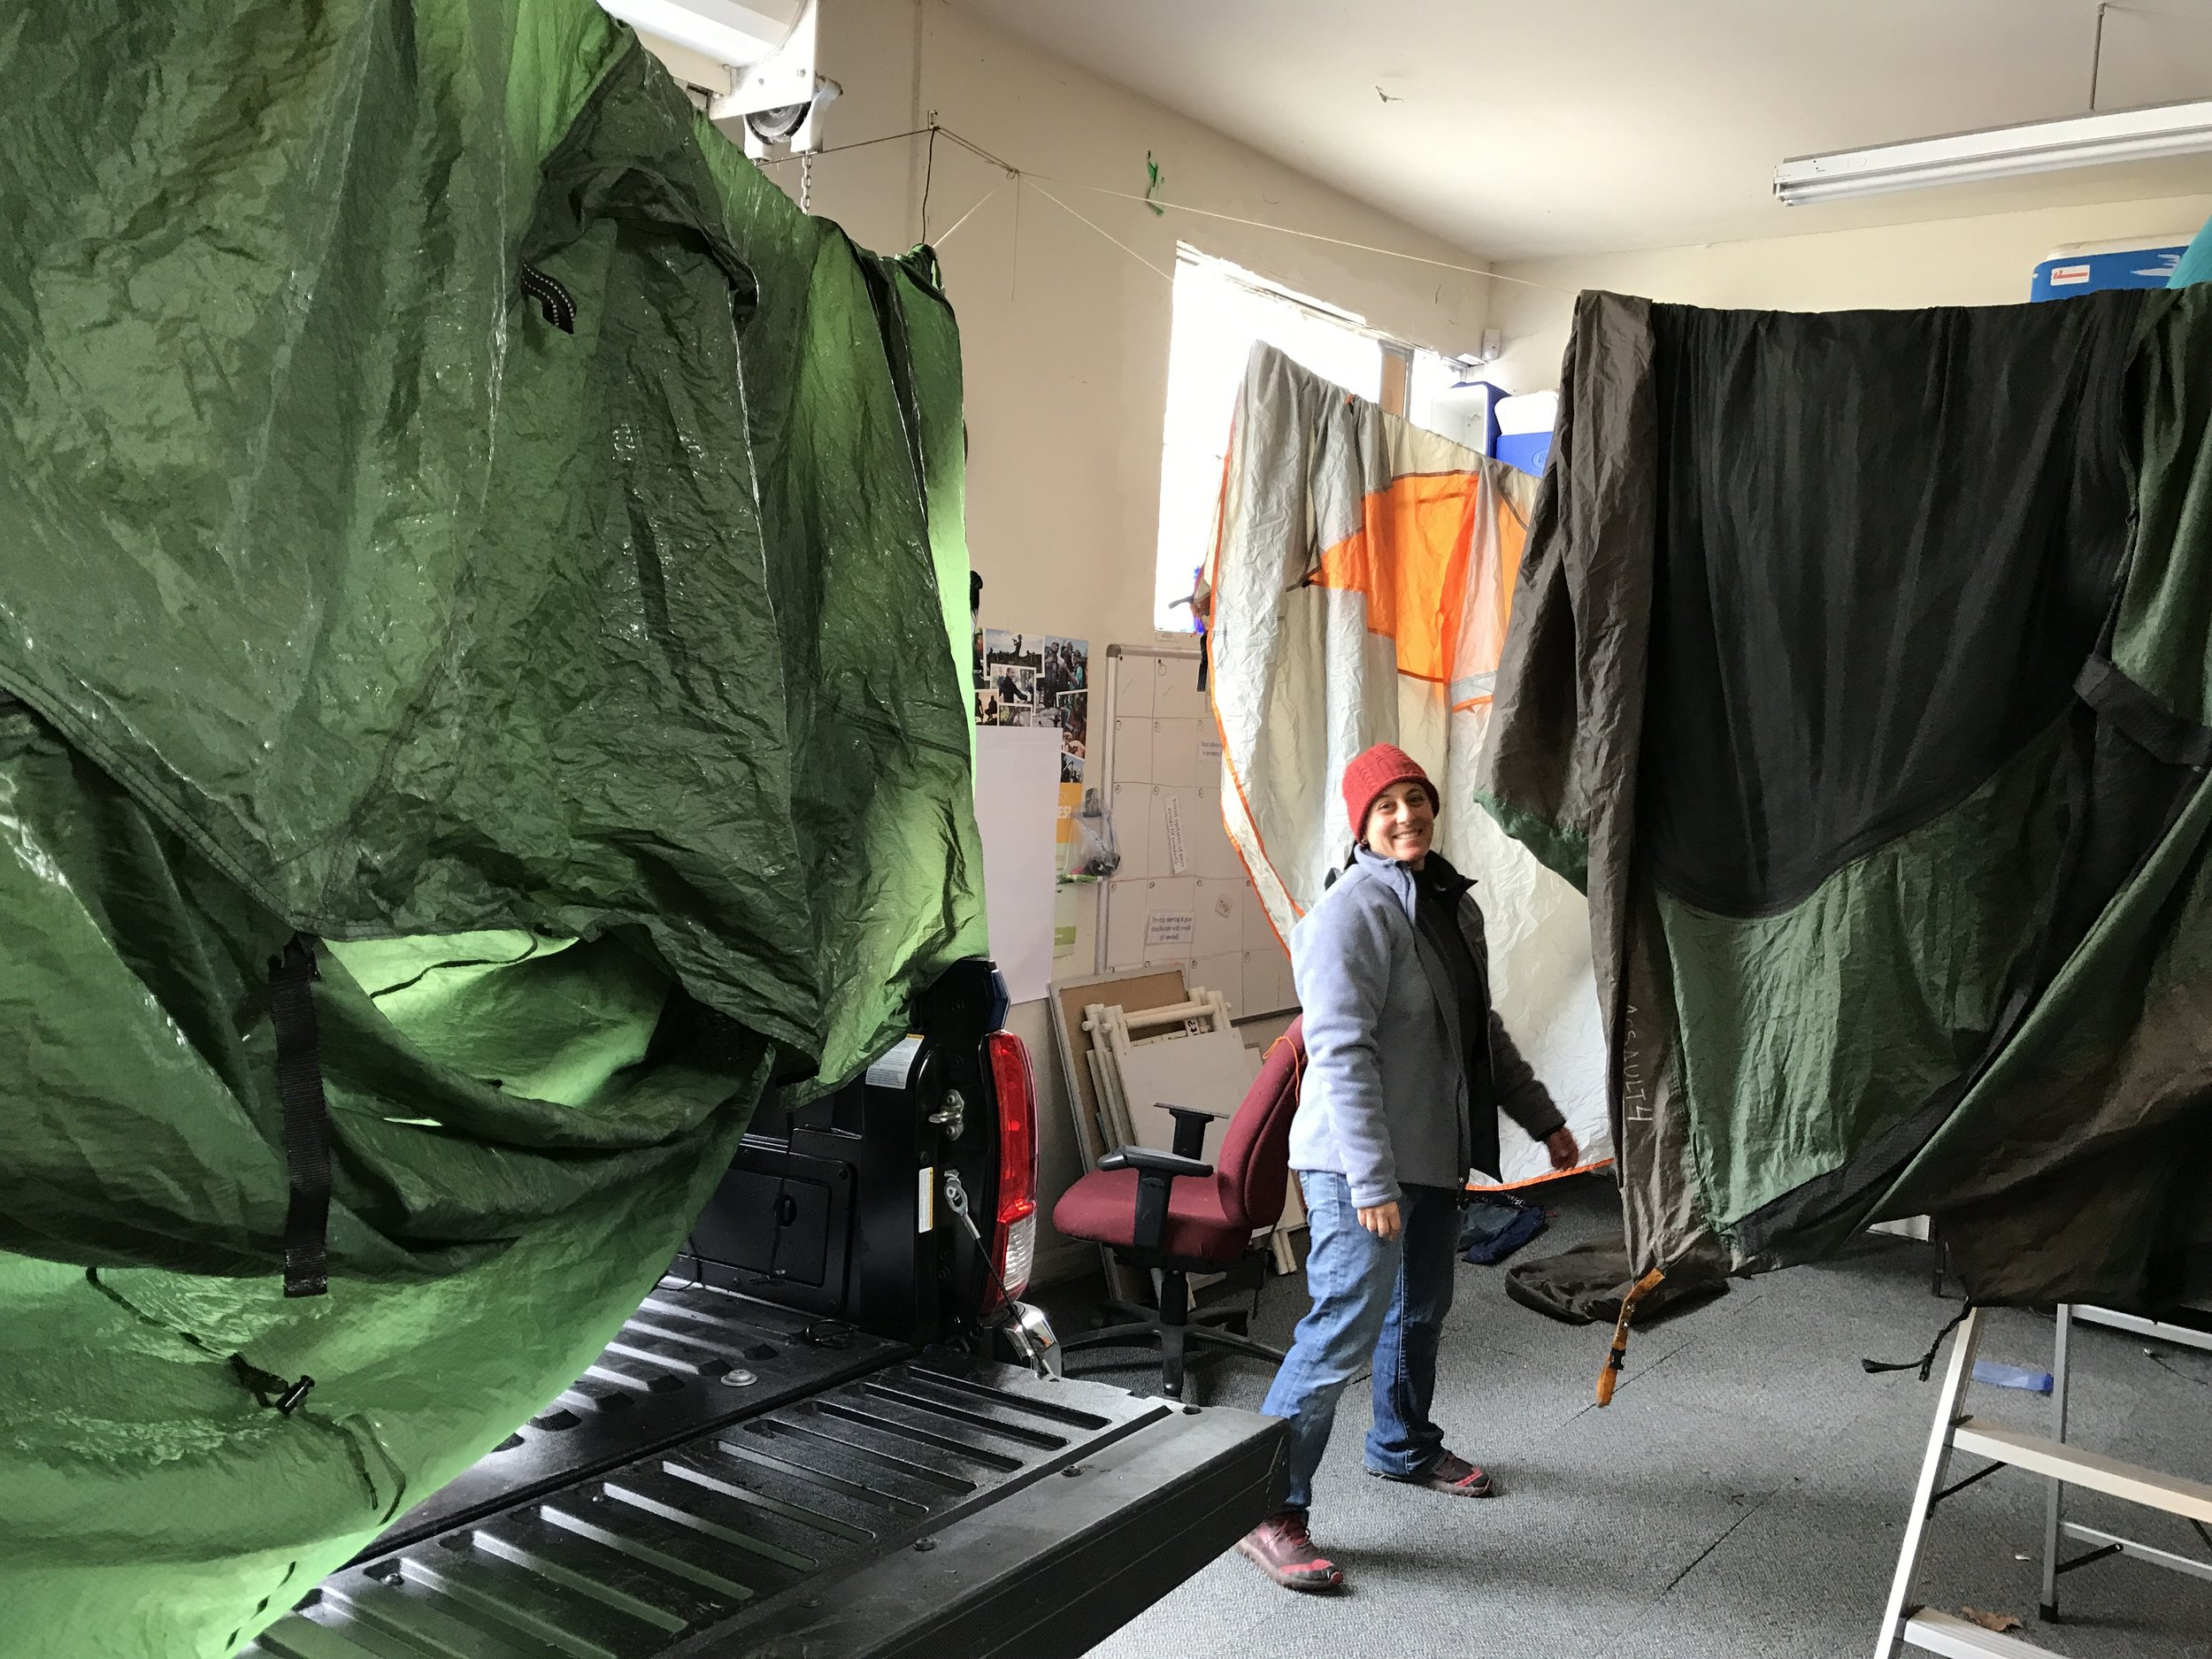 Jen Antonuccio, a long time BAWT faculty (volunteer instructor) makes sure the tents dry out post course in the BAWT gear library.